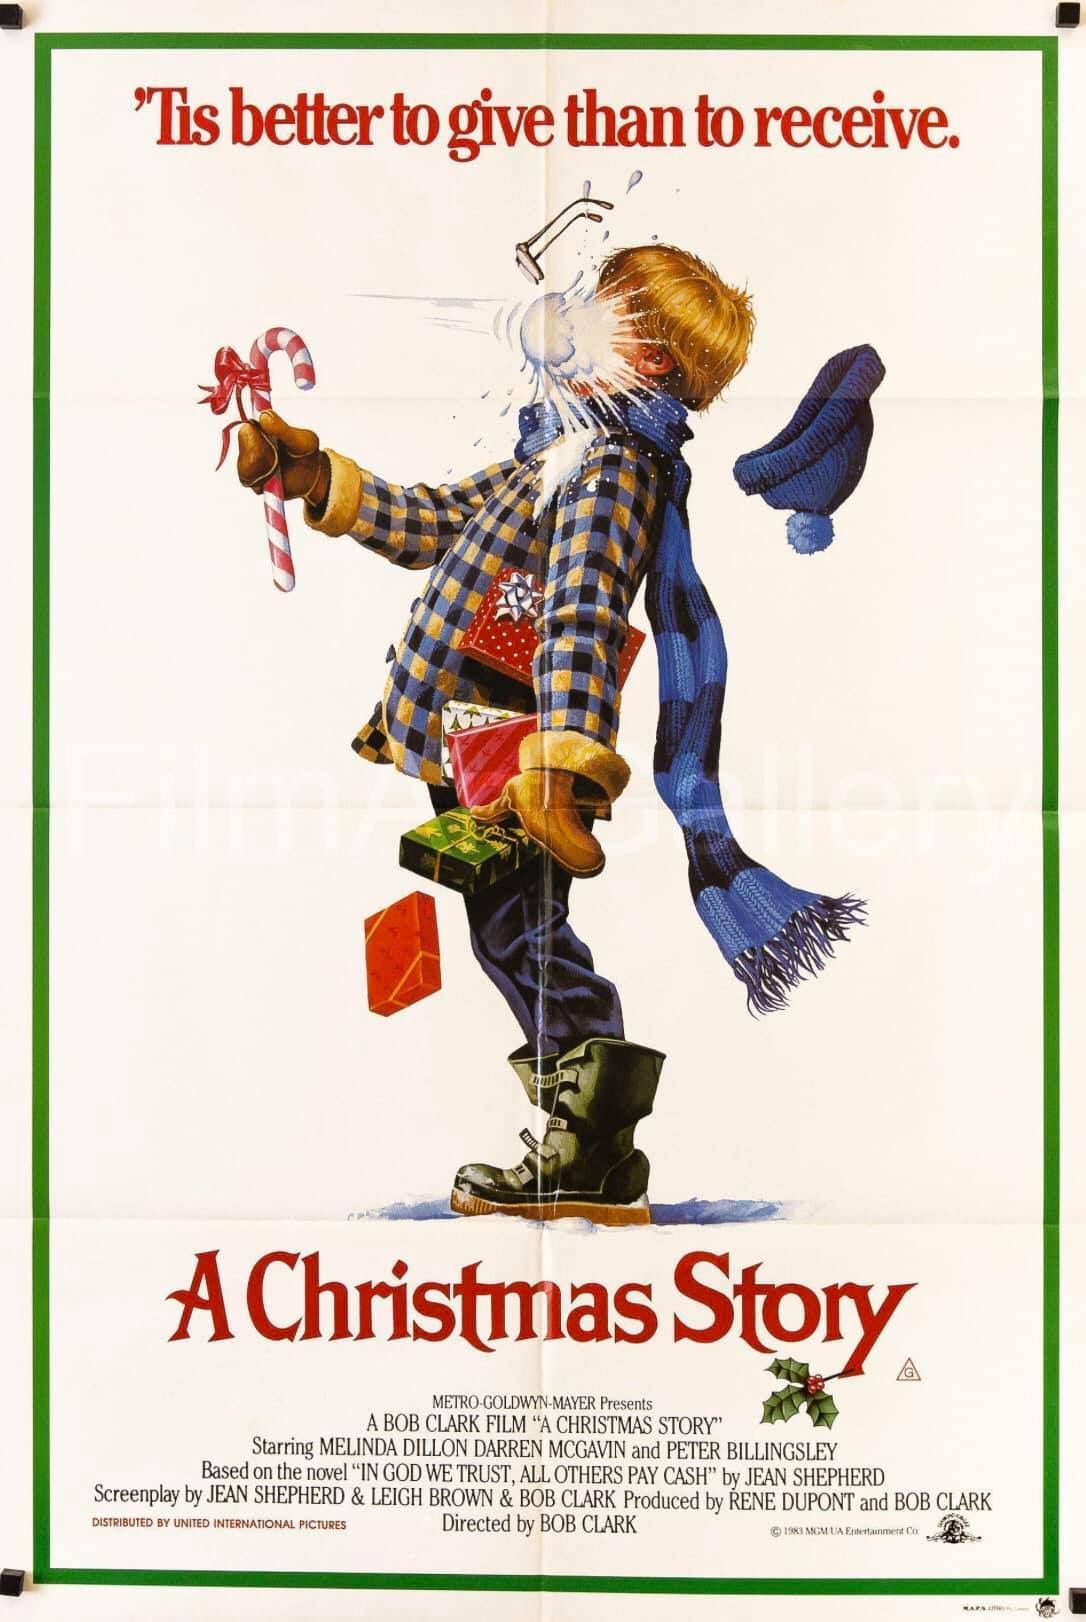 A Christmas Story Streaming 2020 Pin by HJECNGYUI on 19AW in 2020 | A christmas story, Christmas